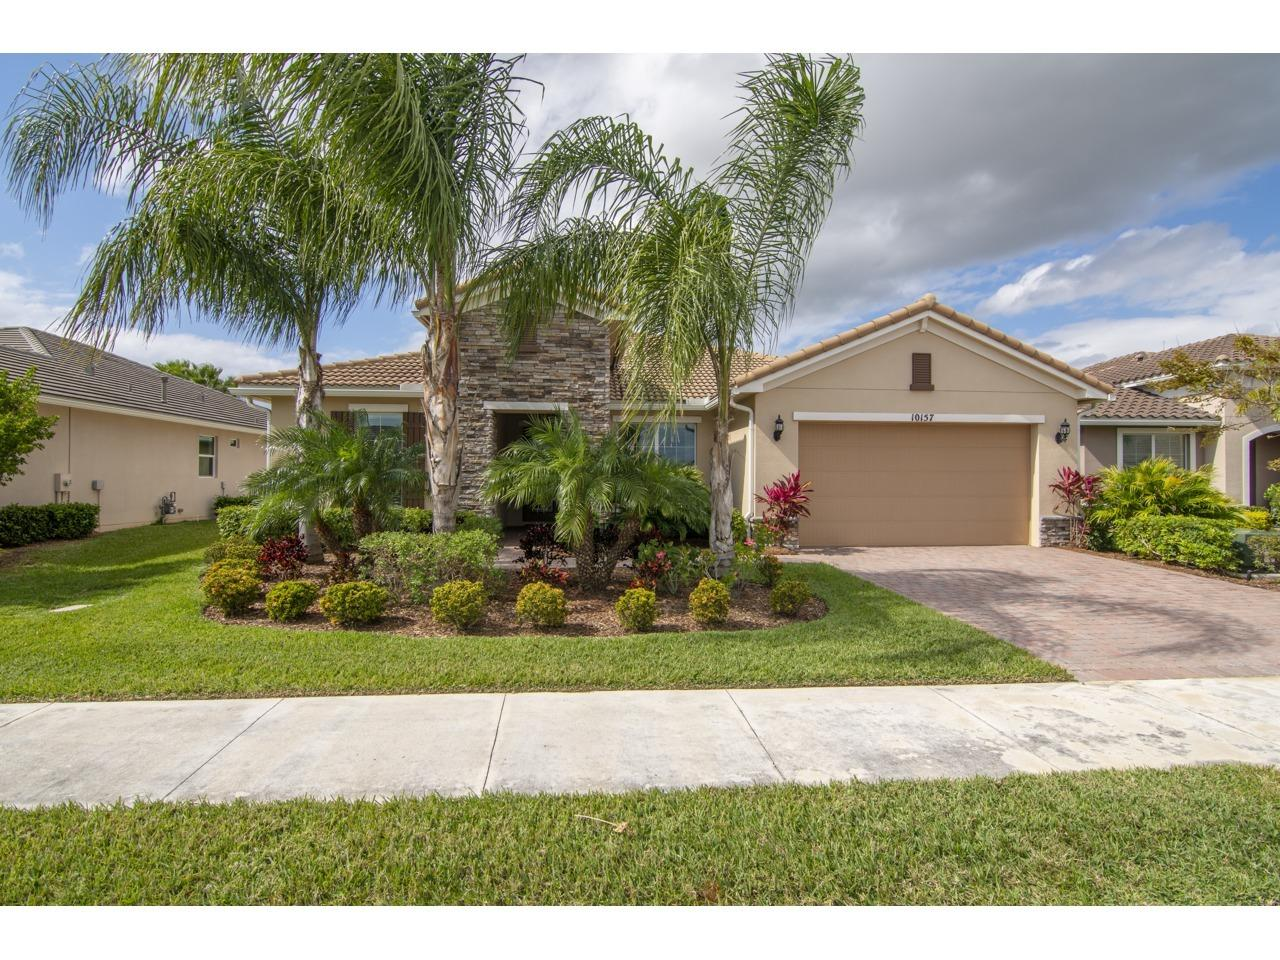 Resort Style Living Palm Coast Model built in 2015. This 4 bedroom, Den, 3 bathroom and Great Room home is in Vitalia at Tradition. The 2481 Living Area Sq. Ft. and 3329 Total Sq. Ft. is selling for only $409,900. Store your toys in the 4 Ft. extended Garage. Home boasts upgrades that include Full House Impact Glass with Triple Sliding Patio Doors to the Lanai. Oversized Master Bedroom has a Huge walk in closet, Gourmet Kitchen with Pantry, Gas option for Range/Oven and Water Heater, 42' Kitchen Cabinets, granite counter tops, 20x20 Tile, Oversized Dining Room has extra windows for additional sunlight. Oversized Screened in Lanai is for those who love to entertain. Additional cabinets in the Laundry Room and Drop Station by the Garage. Start living the Vitalia Resort Lifestyle. Start living the Vitalia Resort Lifestyle that includes Tennis, Bocce Ball, Pickle Ball, Club Rooms, Demo Kitchen, Fire Pits, Live Entertainment at the Grand Ballroom and to many clubs to list. There is a full time Events Coordinator in Vitalia.